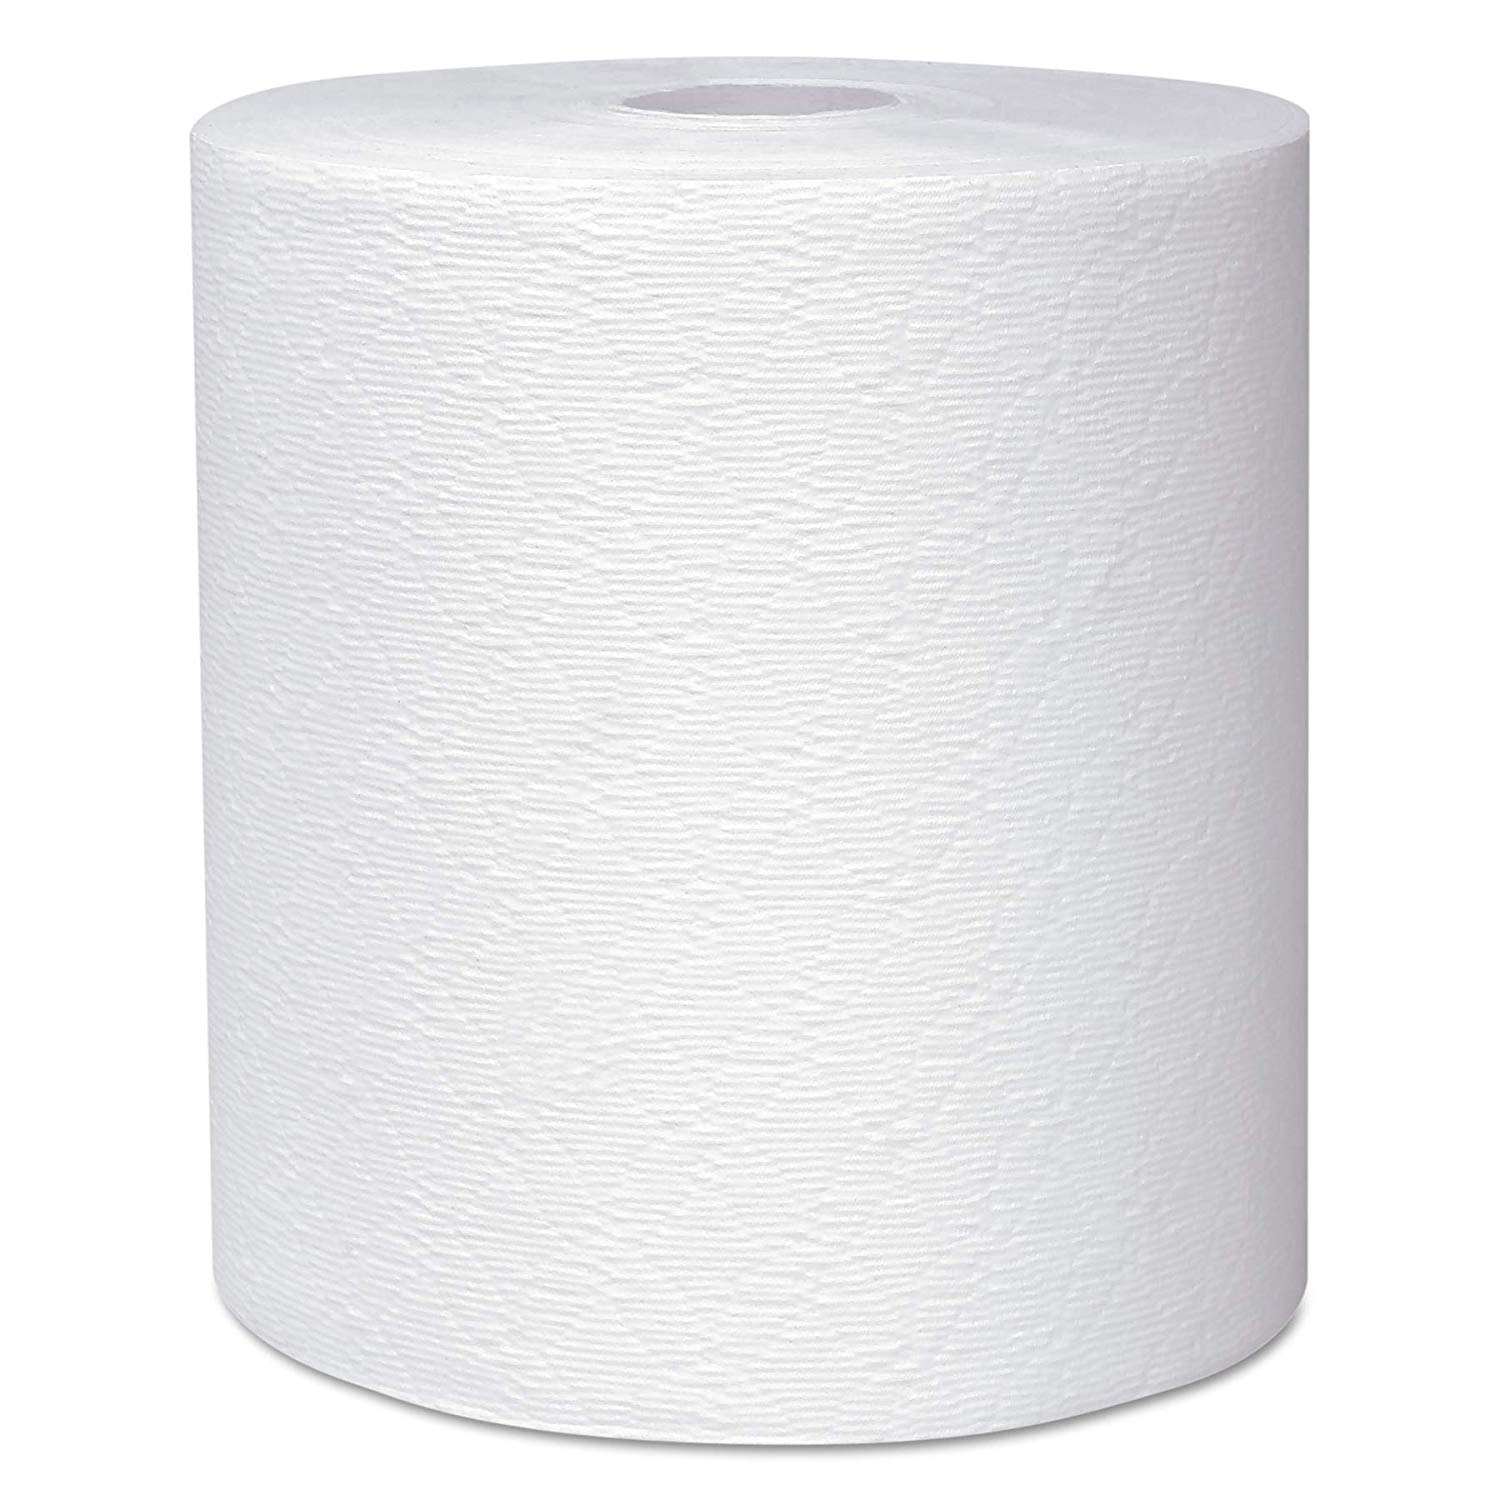 Scott Essential Plus Hard Roll Paper Towels